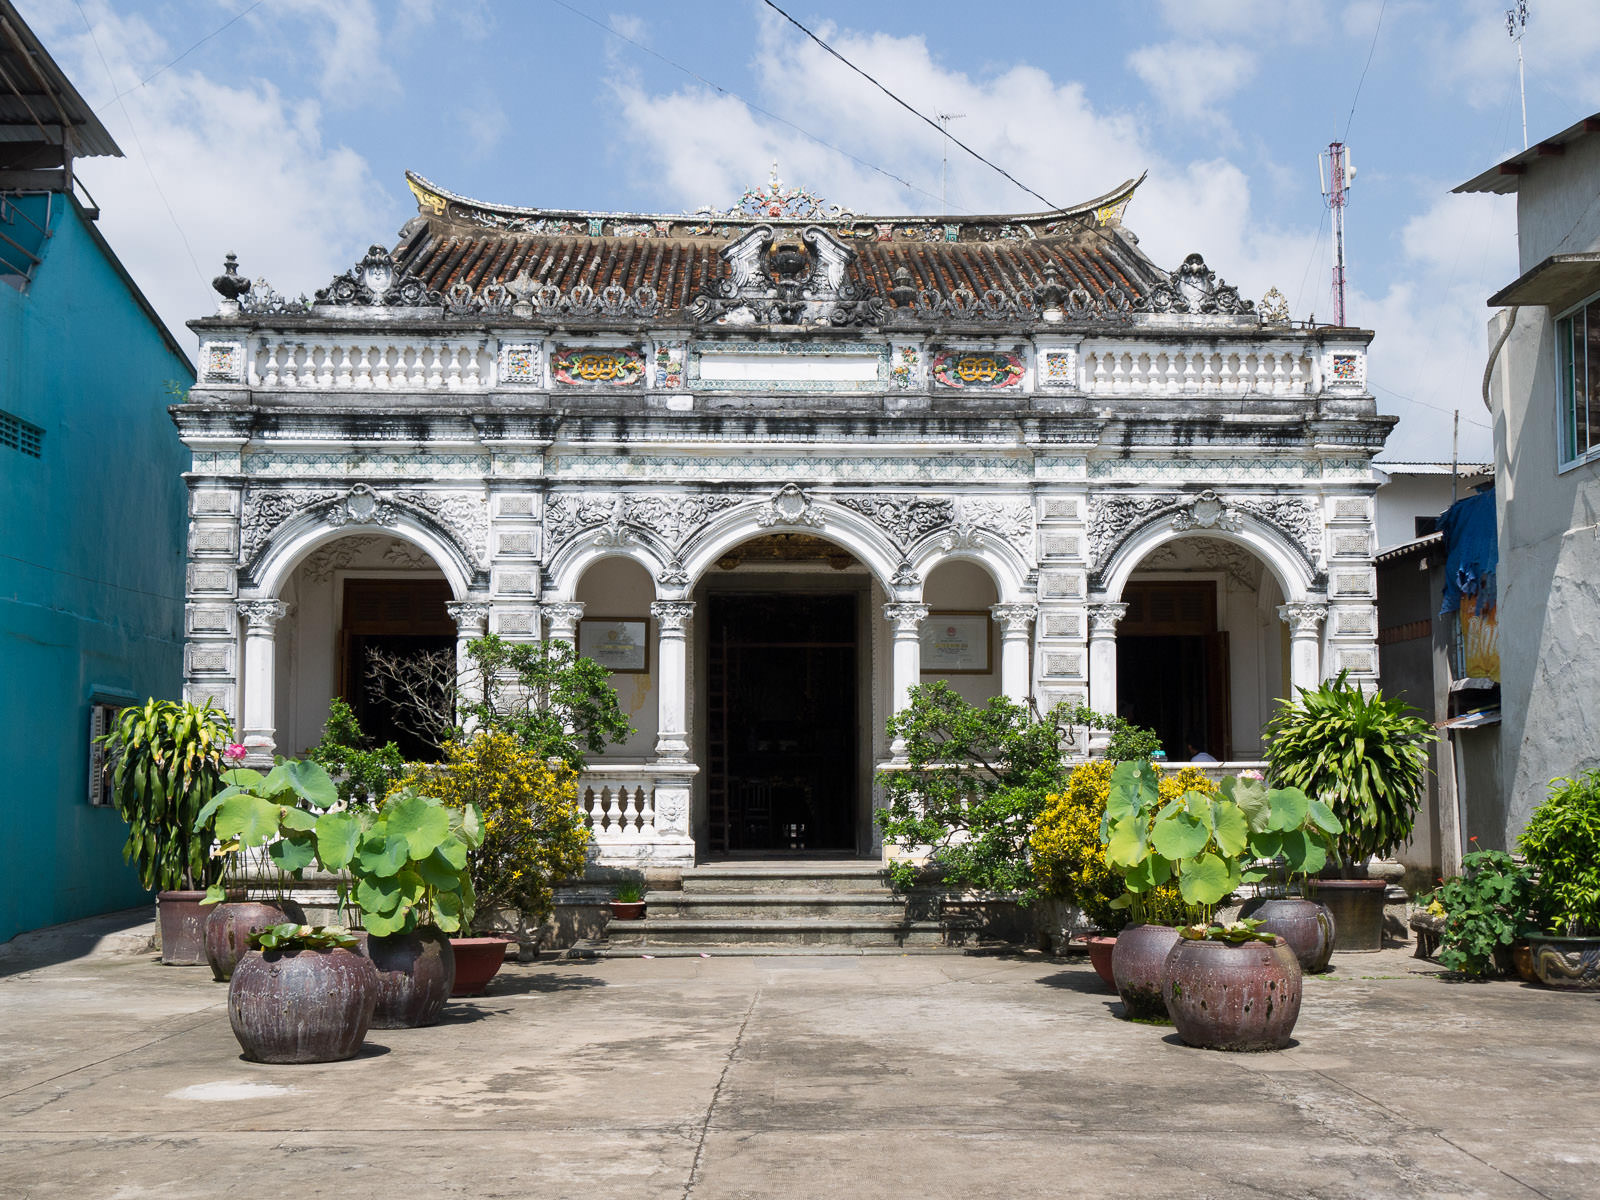 The house of Huynh Thuy Le